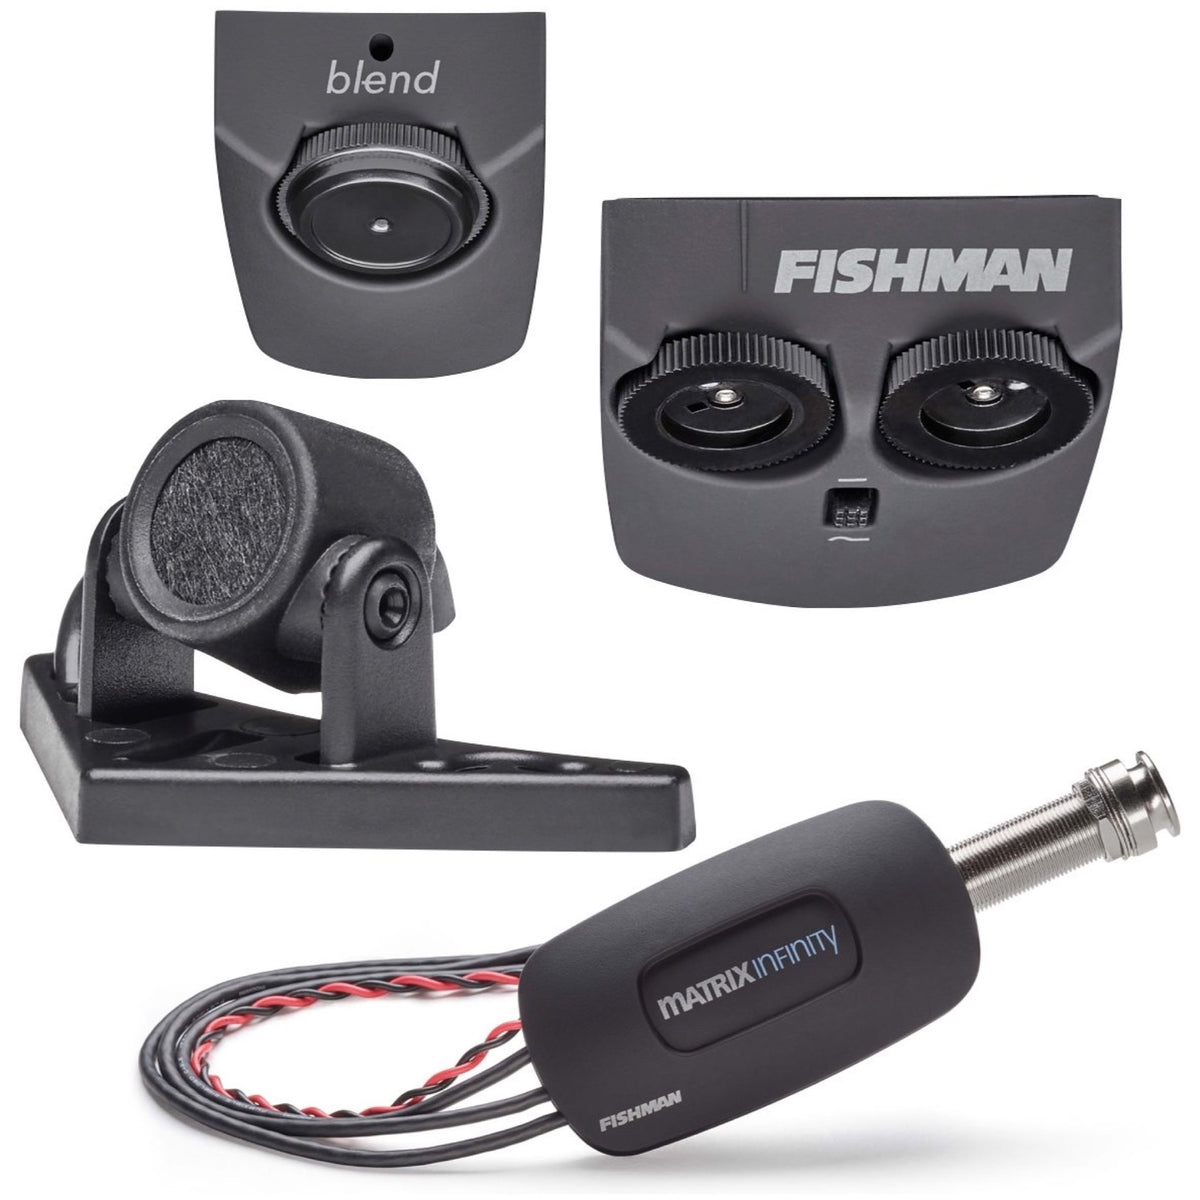 Fishman Matrix Infinity Mic Blend Pickup and Preamp System, Narrow Split